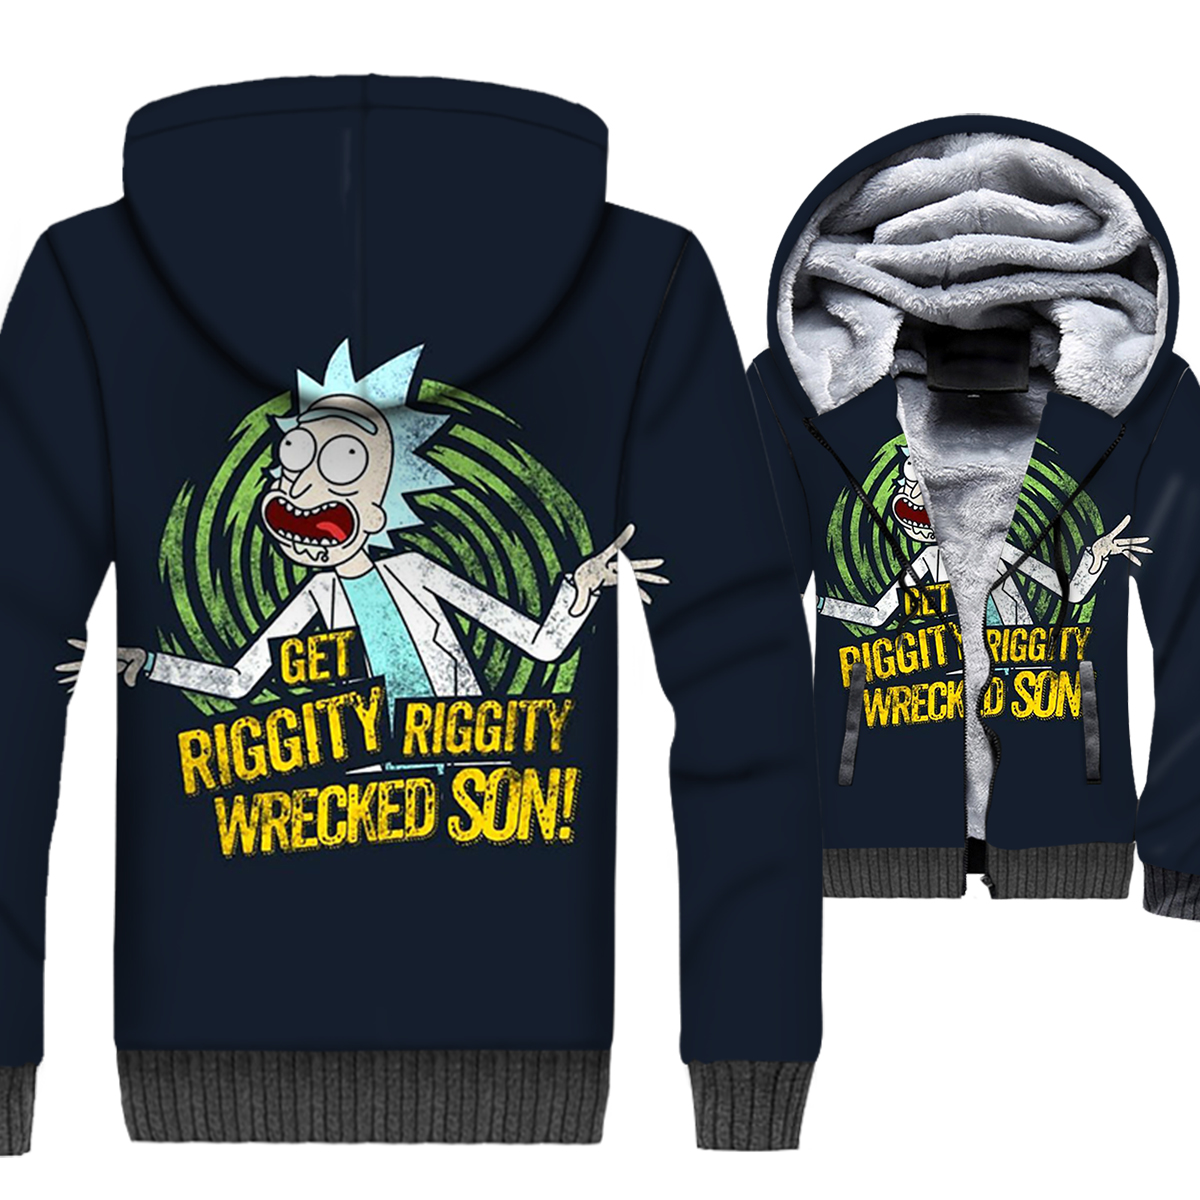 Fleece Warm Design 3d Printed RICK AND MORTY Thick Winter Coats Men's Swearshirts Hot Selling New Arrival Oversize Man Jacket